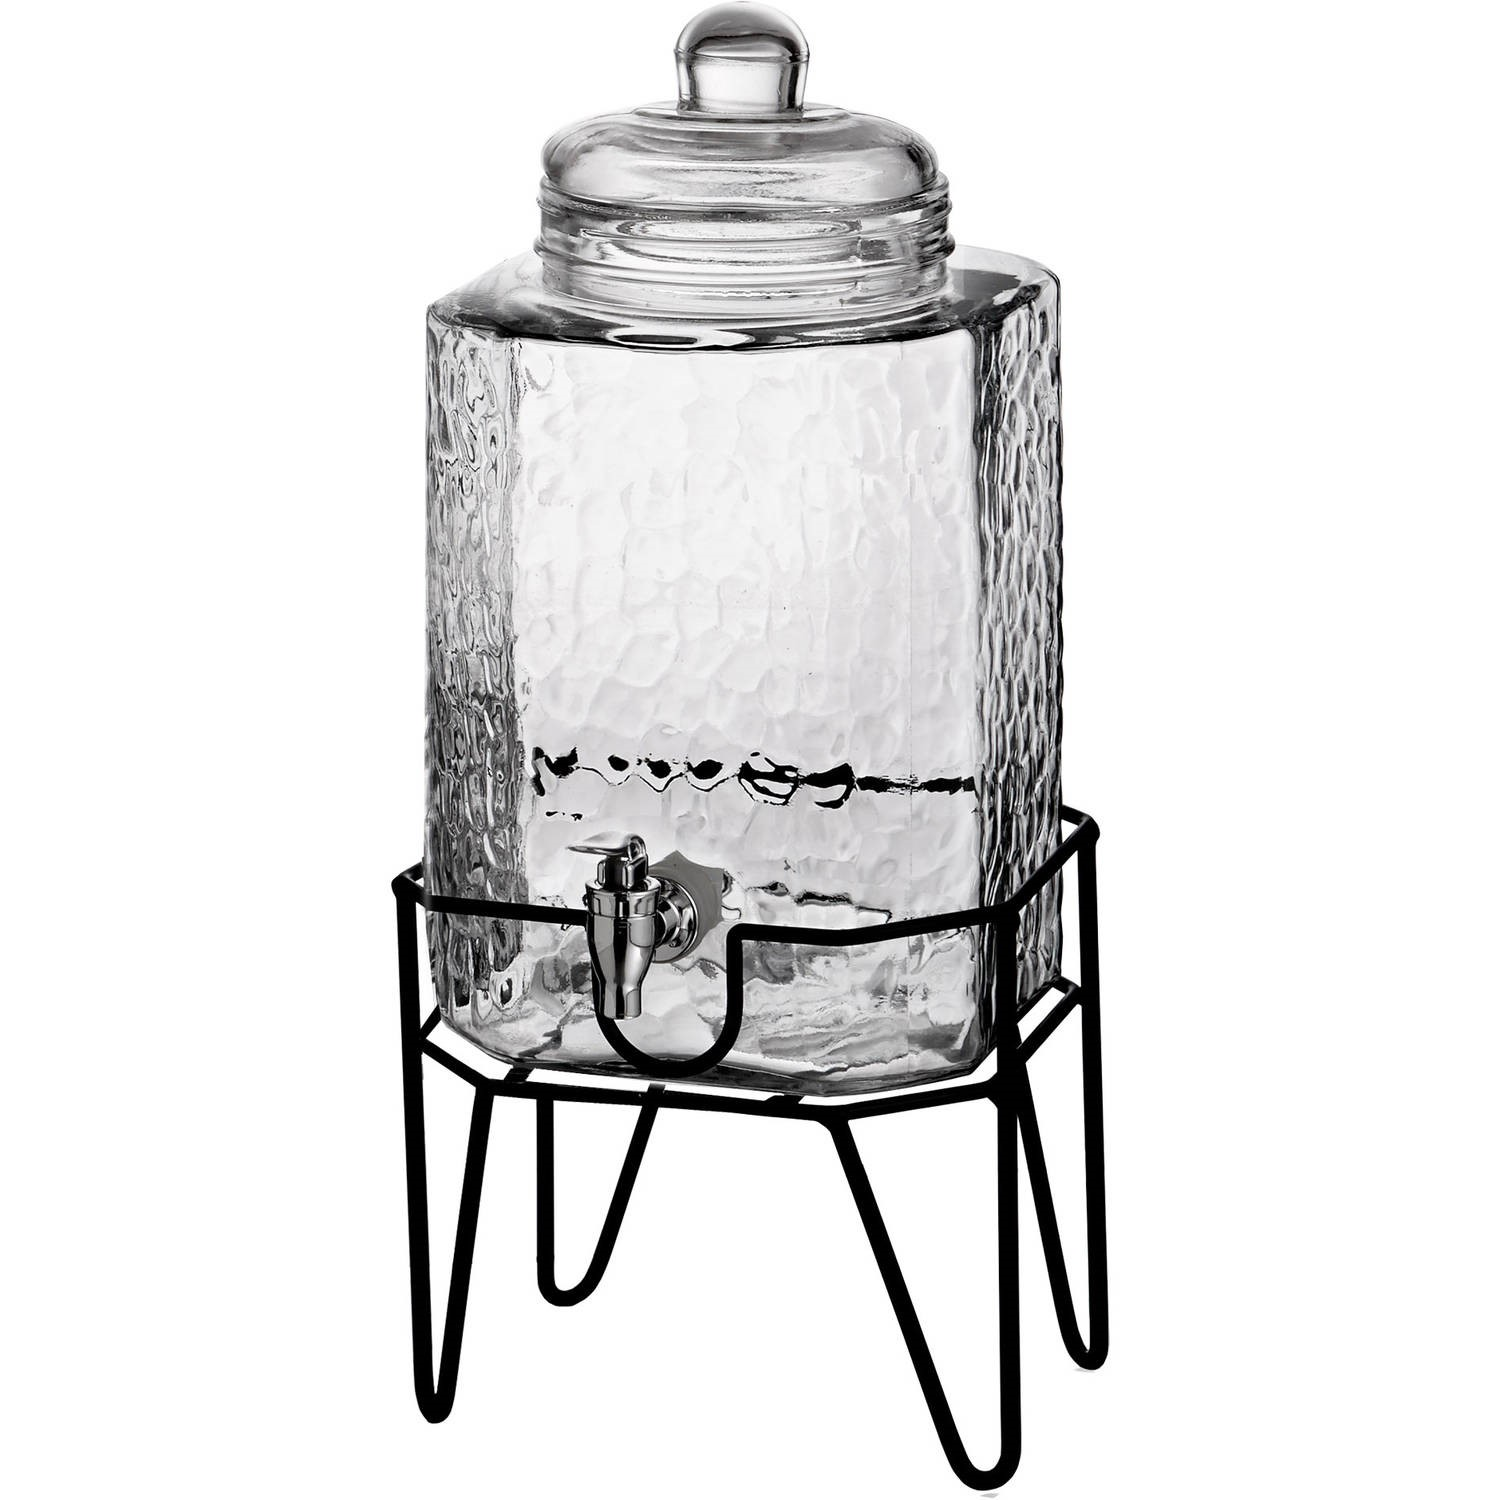 Hamburg Beverage Dispenser & Stand, 1.5 Gallon